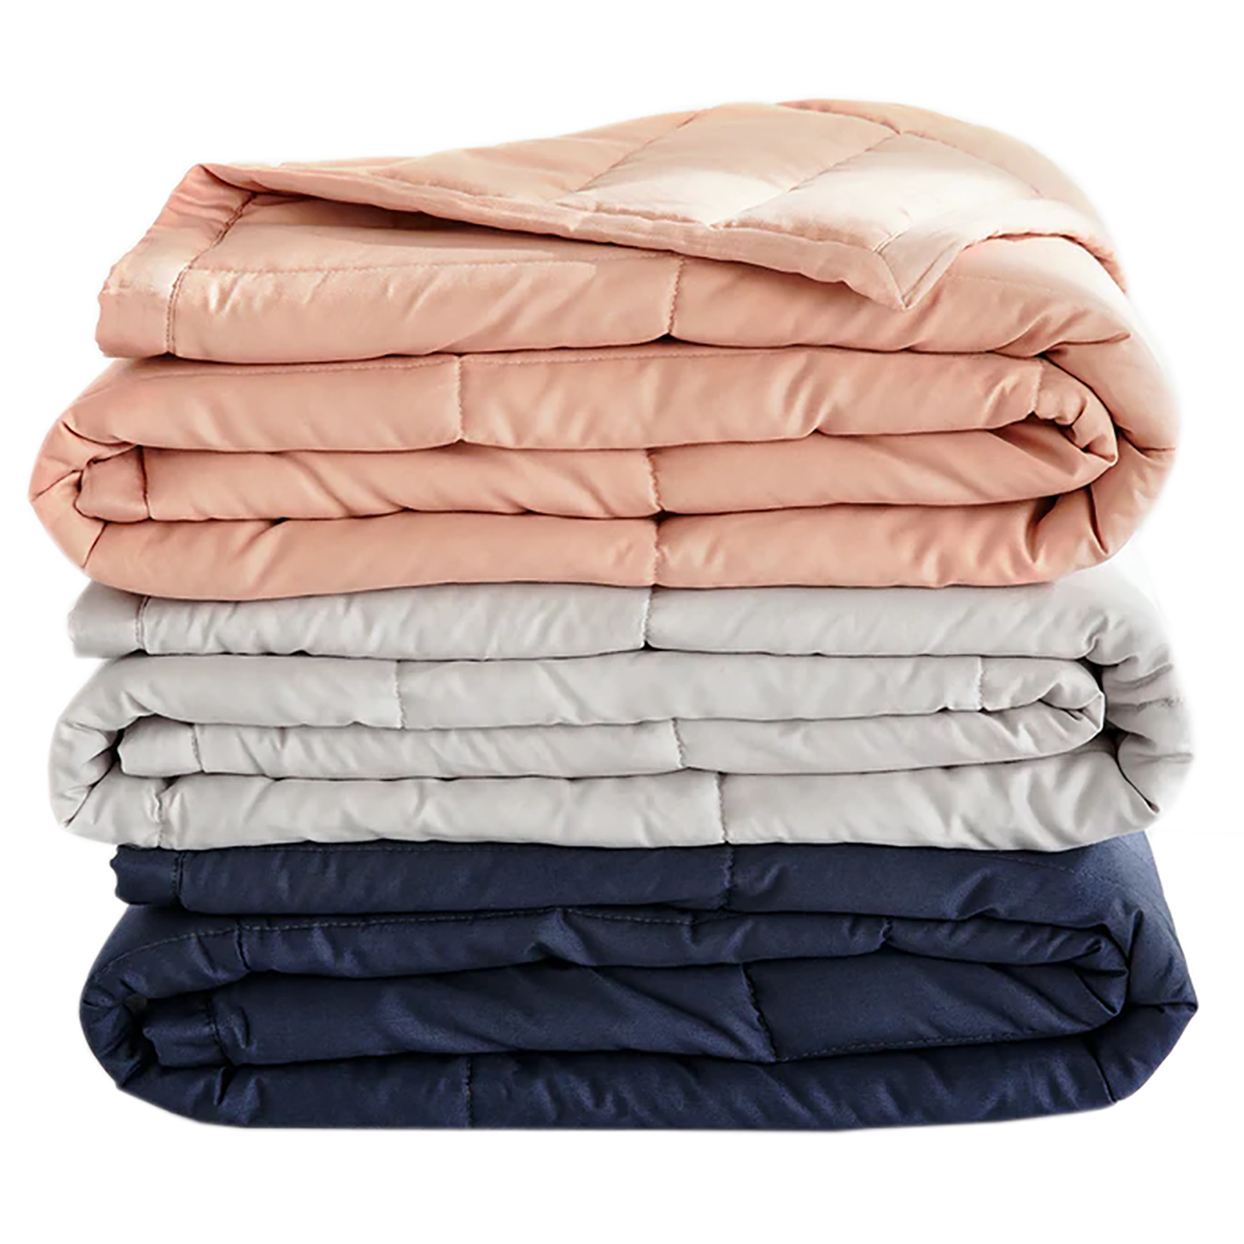 black friday deals 2020 weighted blankets